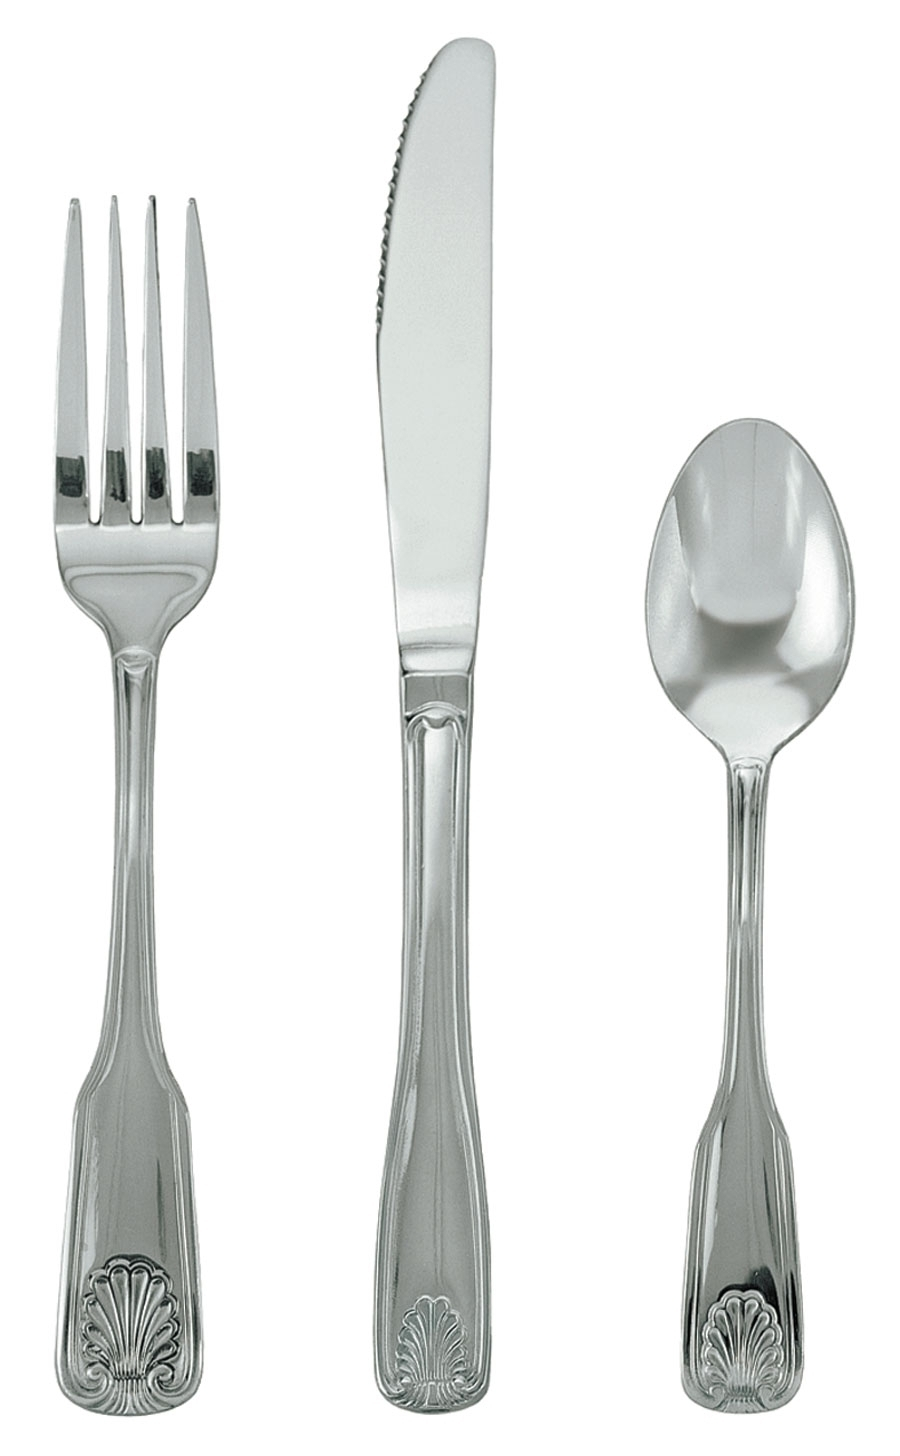 SH/CP-501 Update International - Teaspoon, 18/0 stainless steel, mirror polish, extra heavy weight